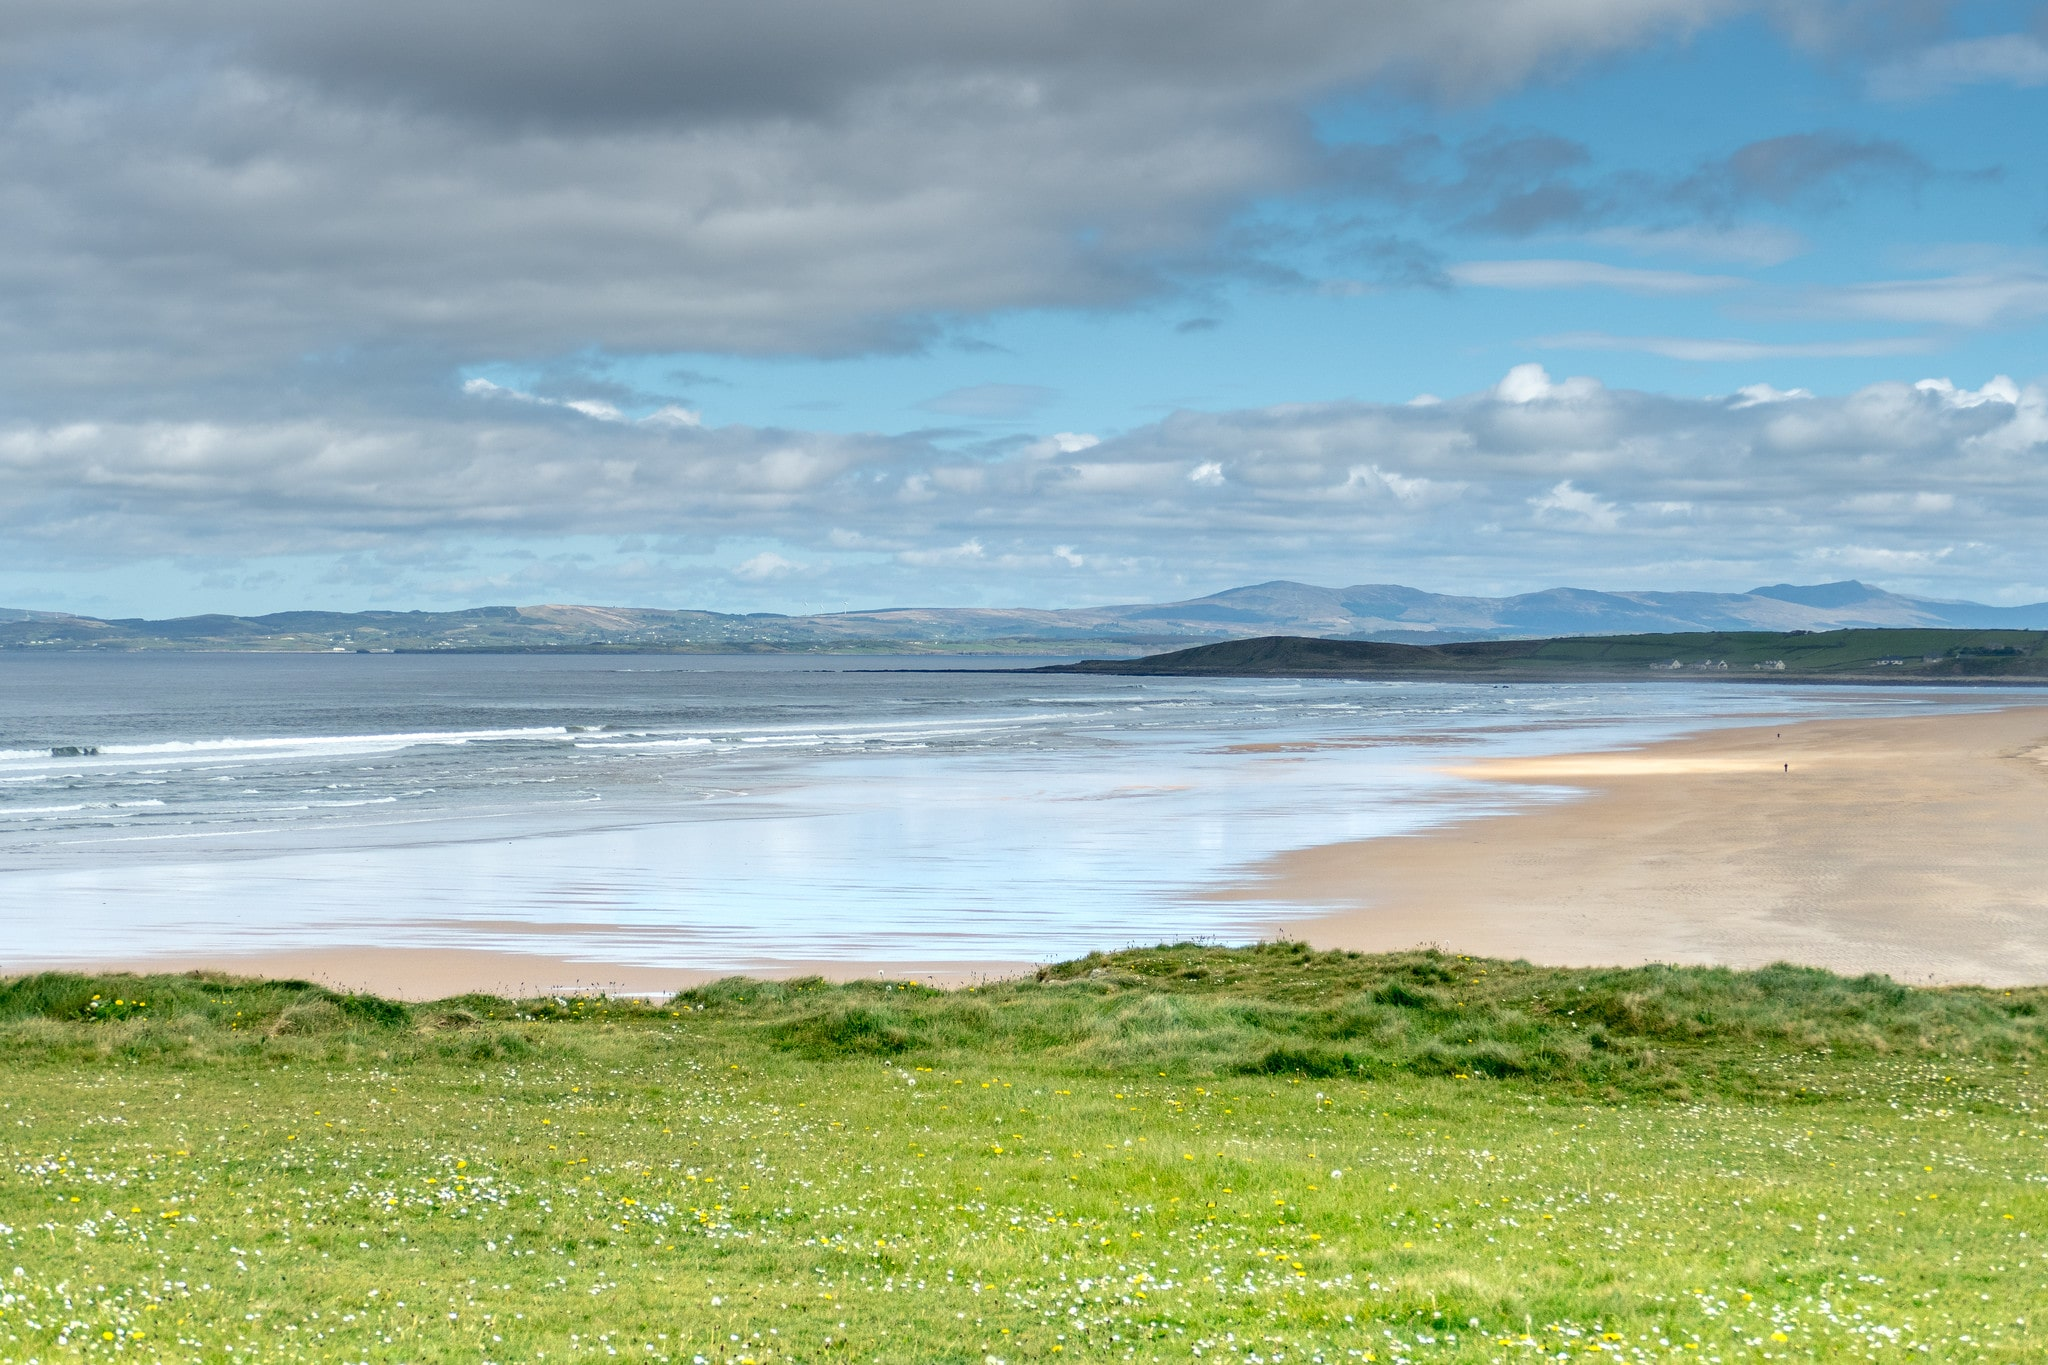 Surfing in Bundoran is a great thing to do in Donegal Ireland